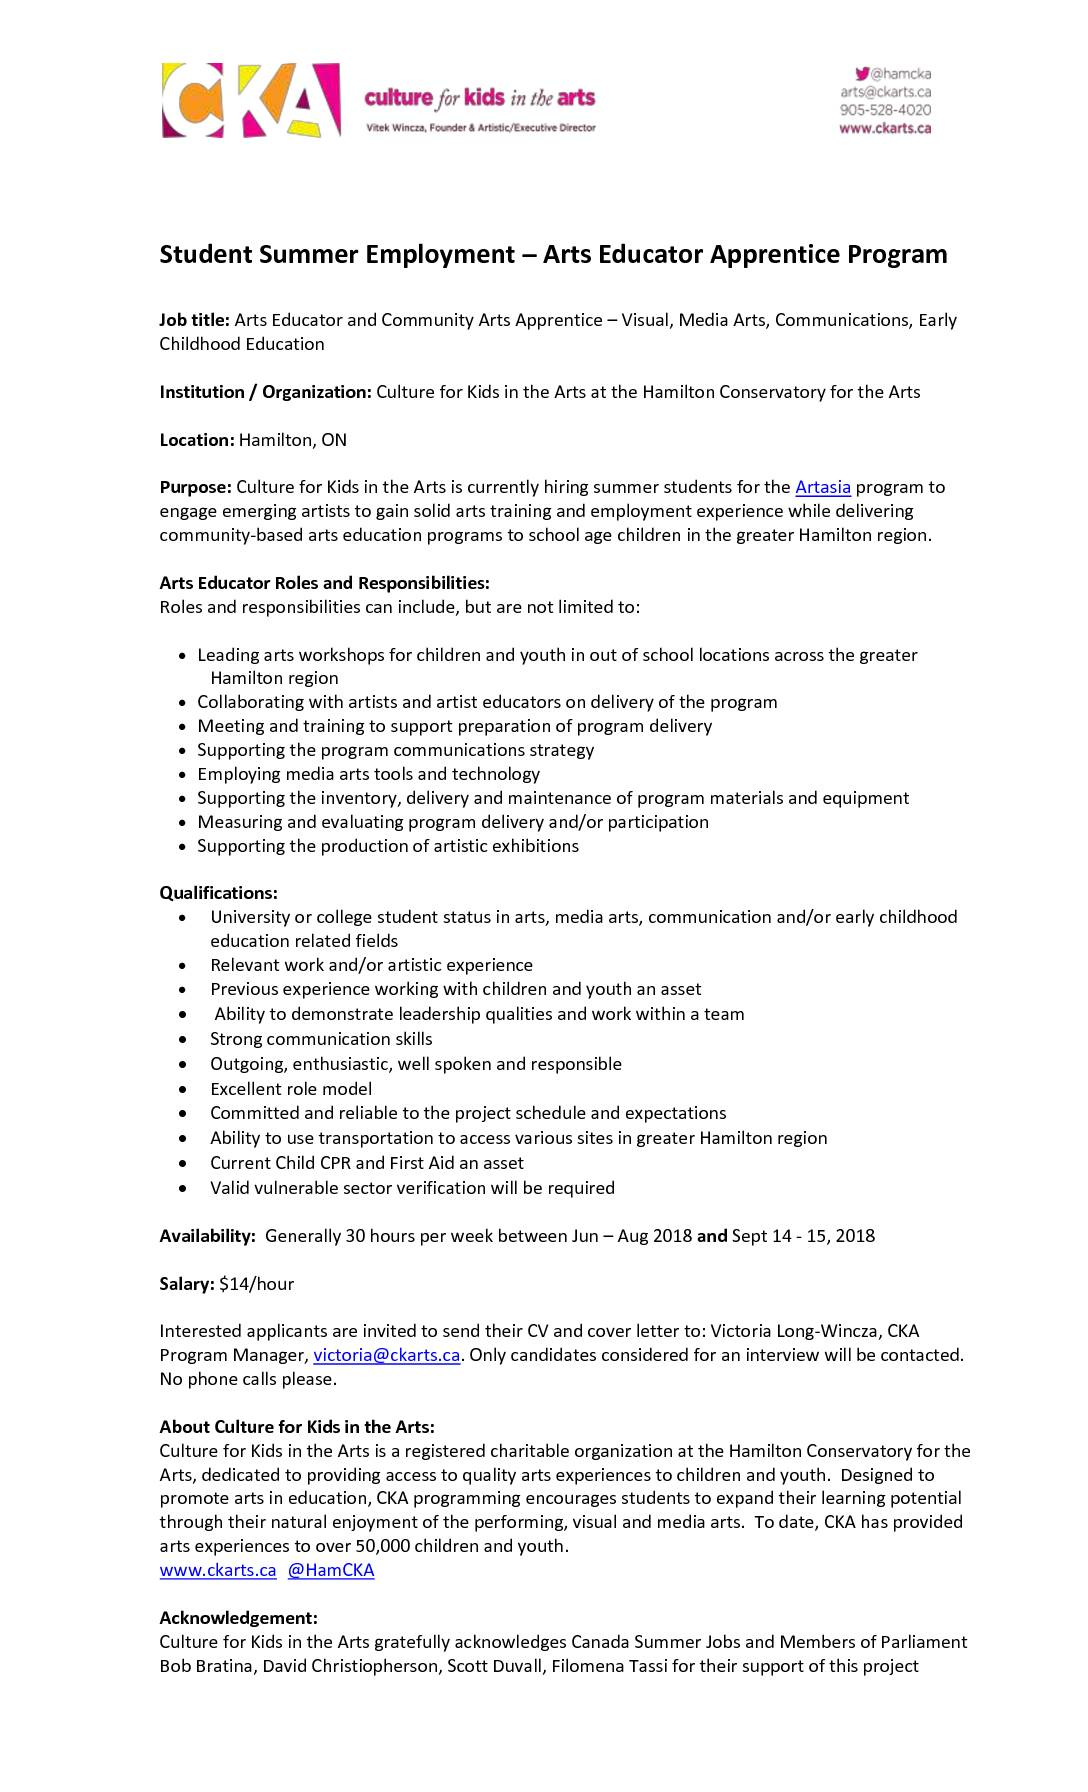 Arts Educator and Community Arts Apprentice – Visual, Media Arts, Communications, Early Childhood Education